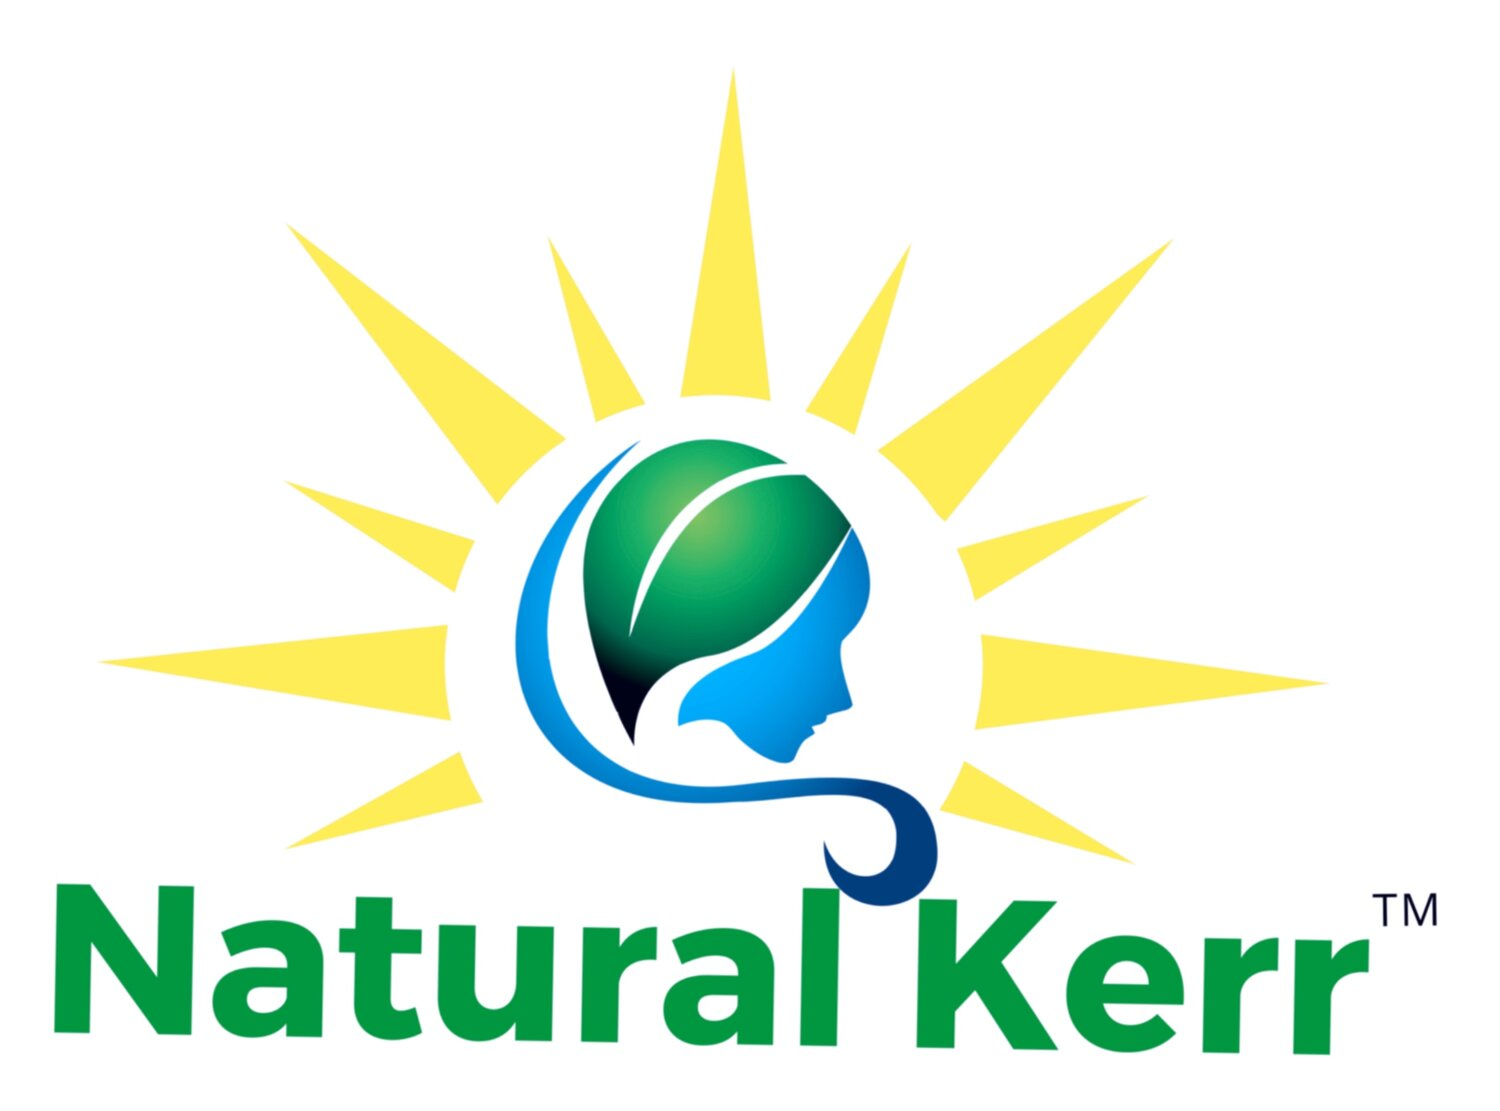 Natural Kerr - Natural Products Marketplace